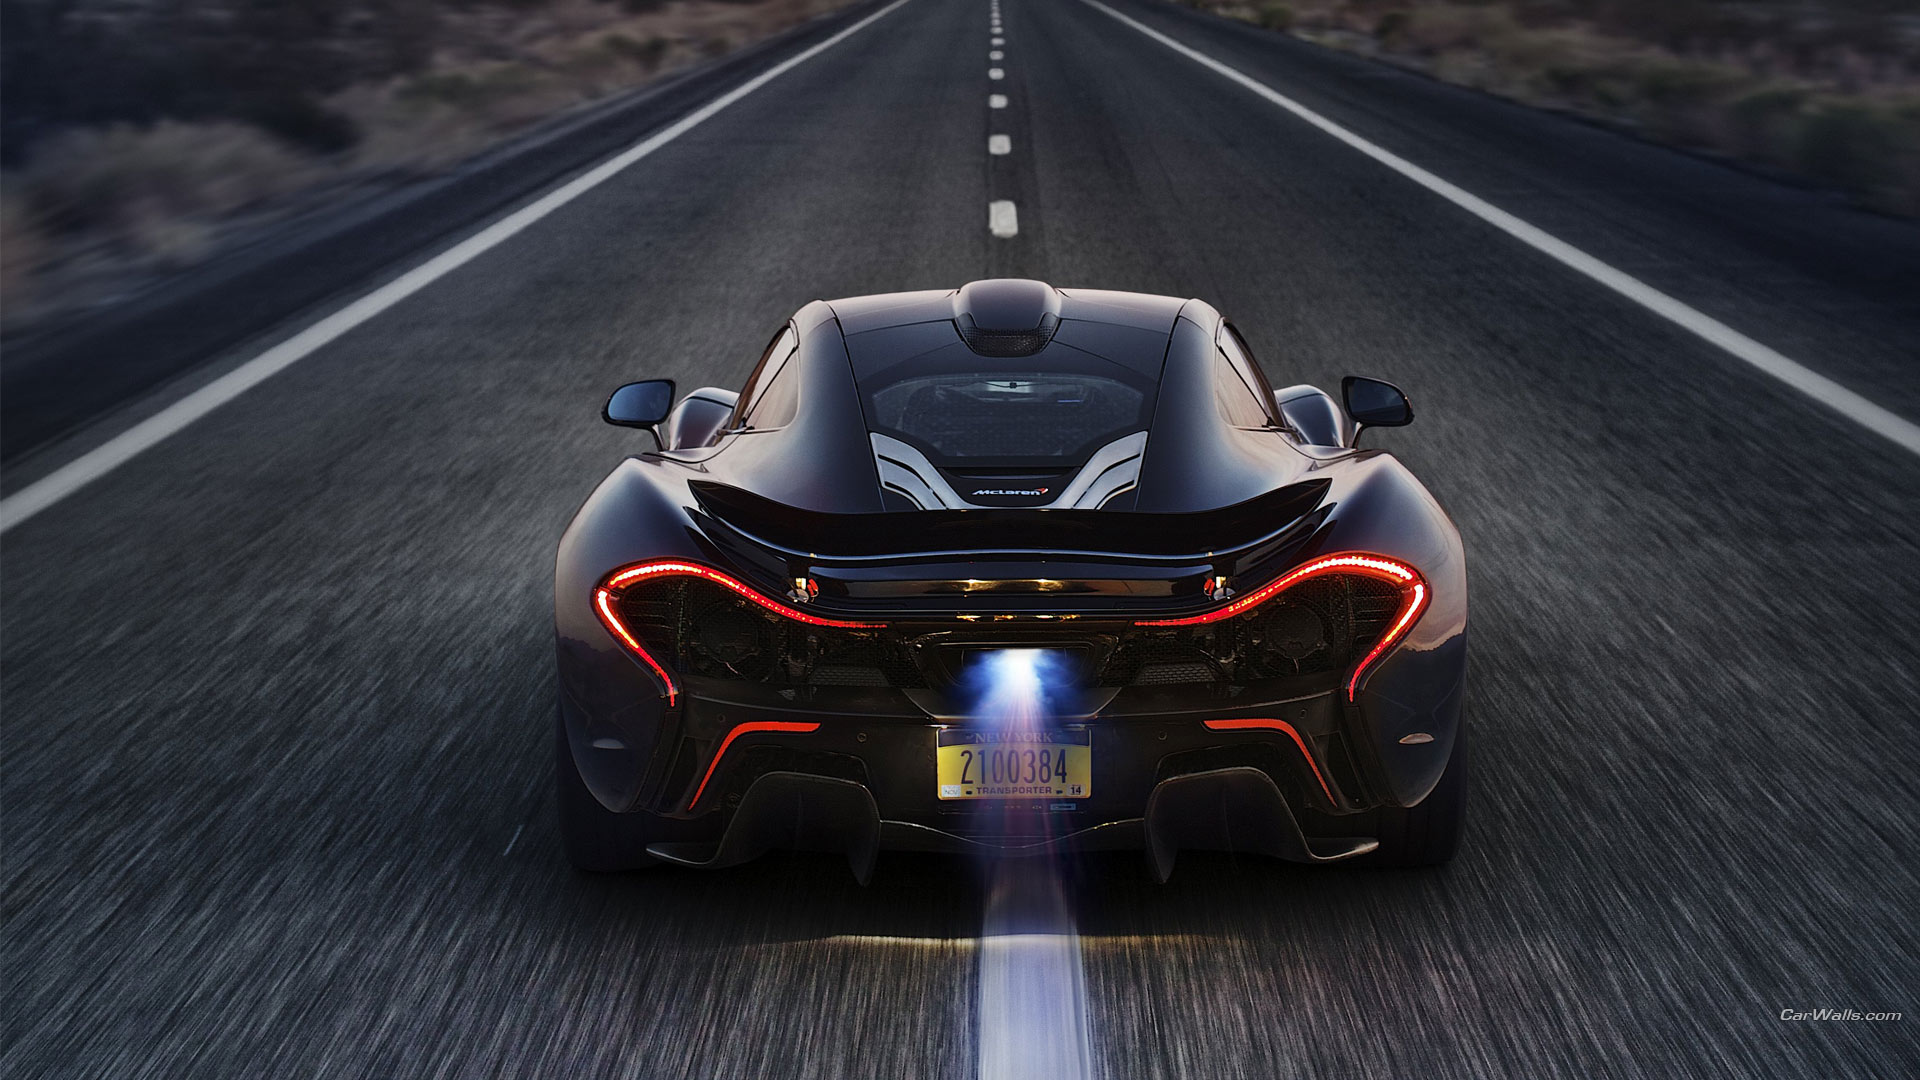 McLaren P1 Full HD Wallpaper and Background Image ...